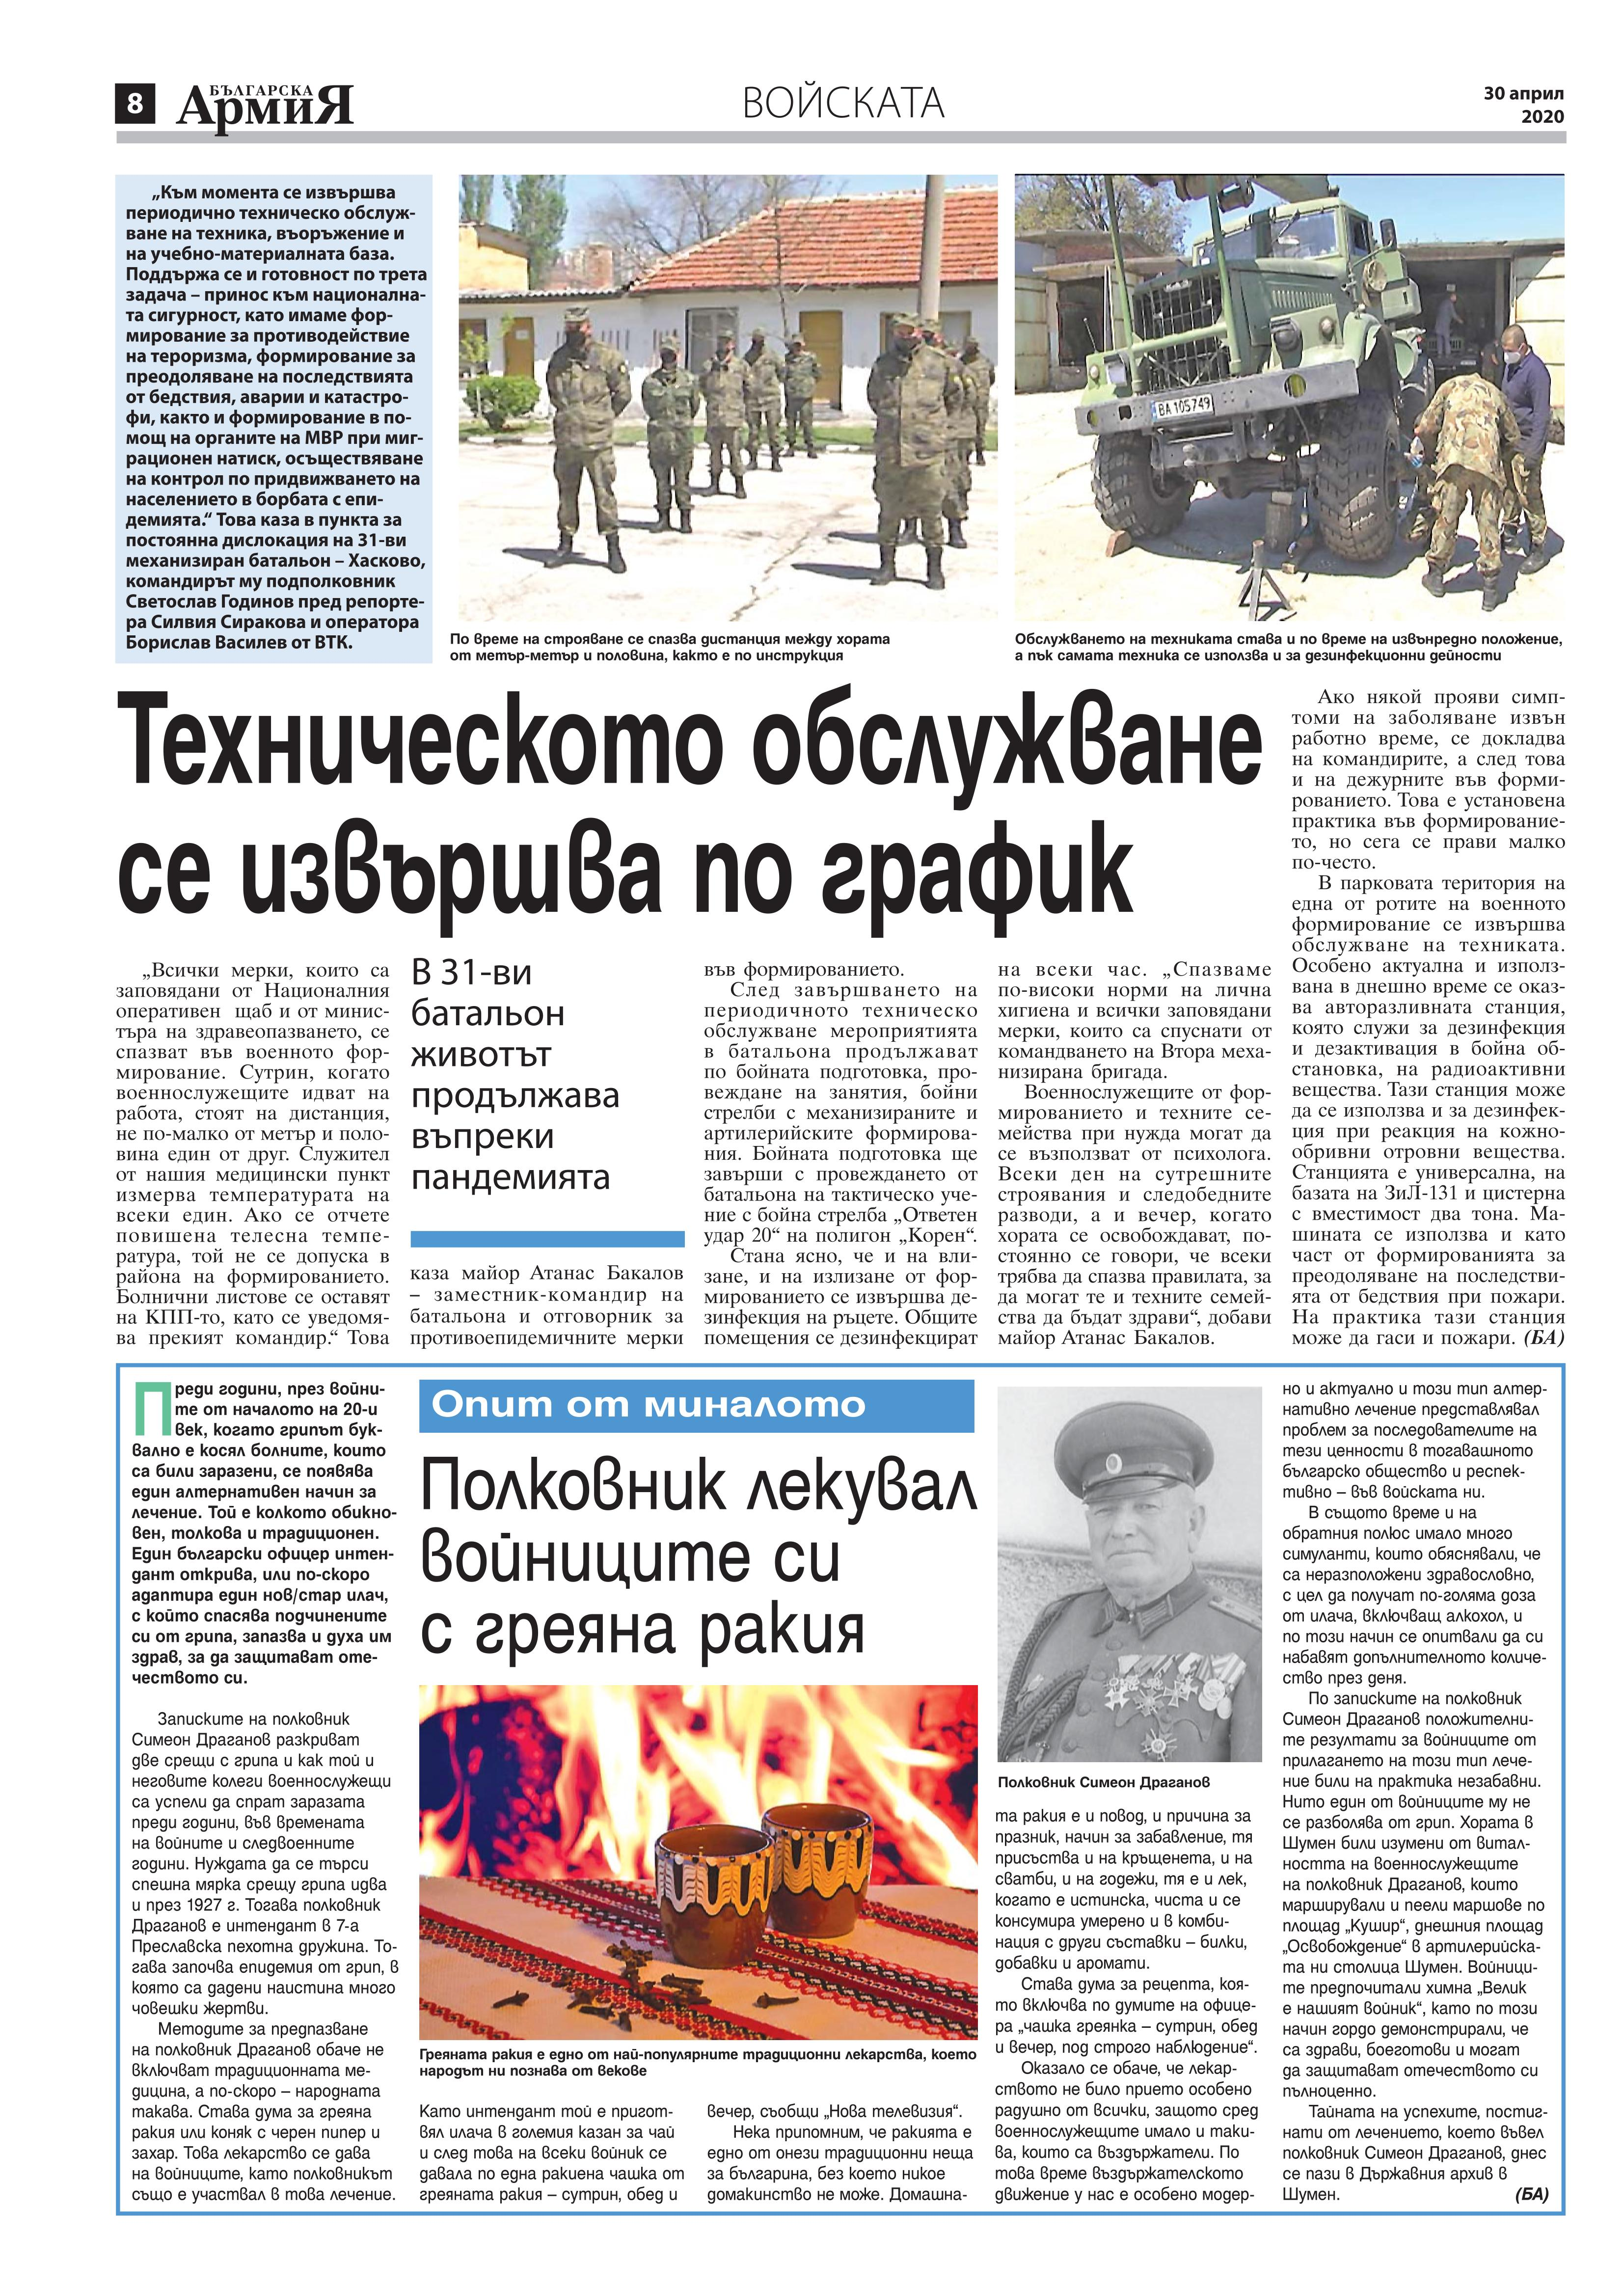 https://www.armymedia.bg/wp-content/uploads/2015/06/08.page1_-134.jpg